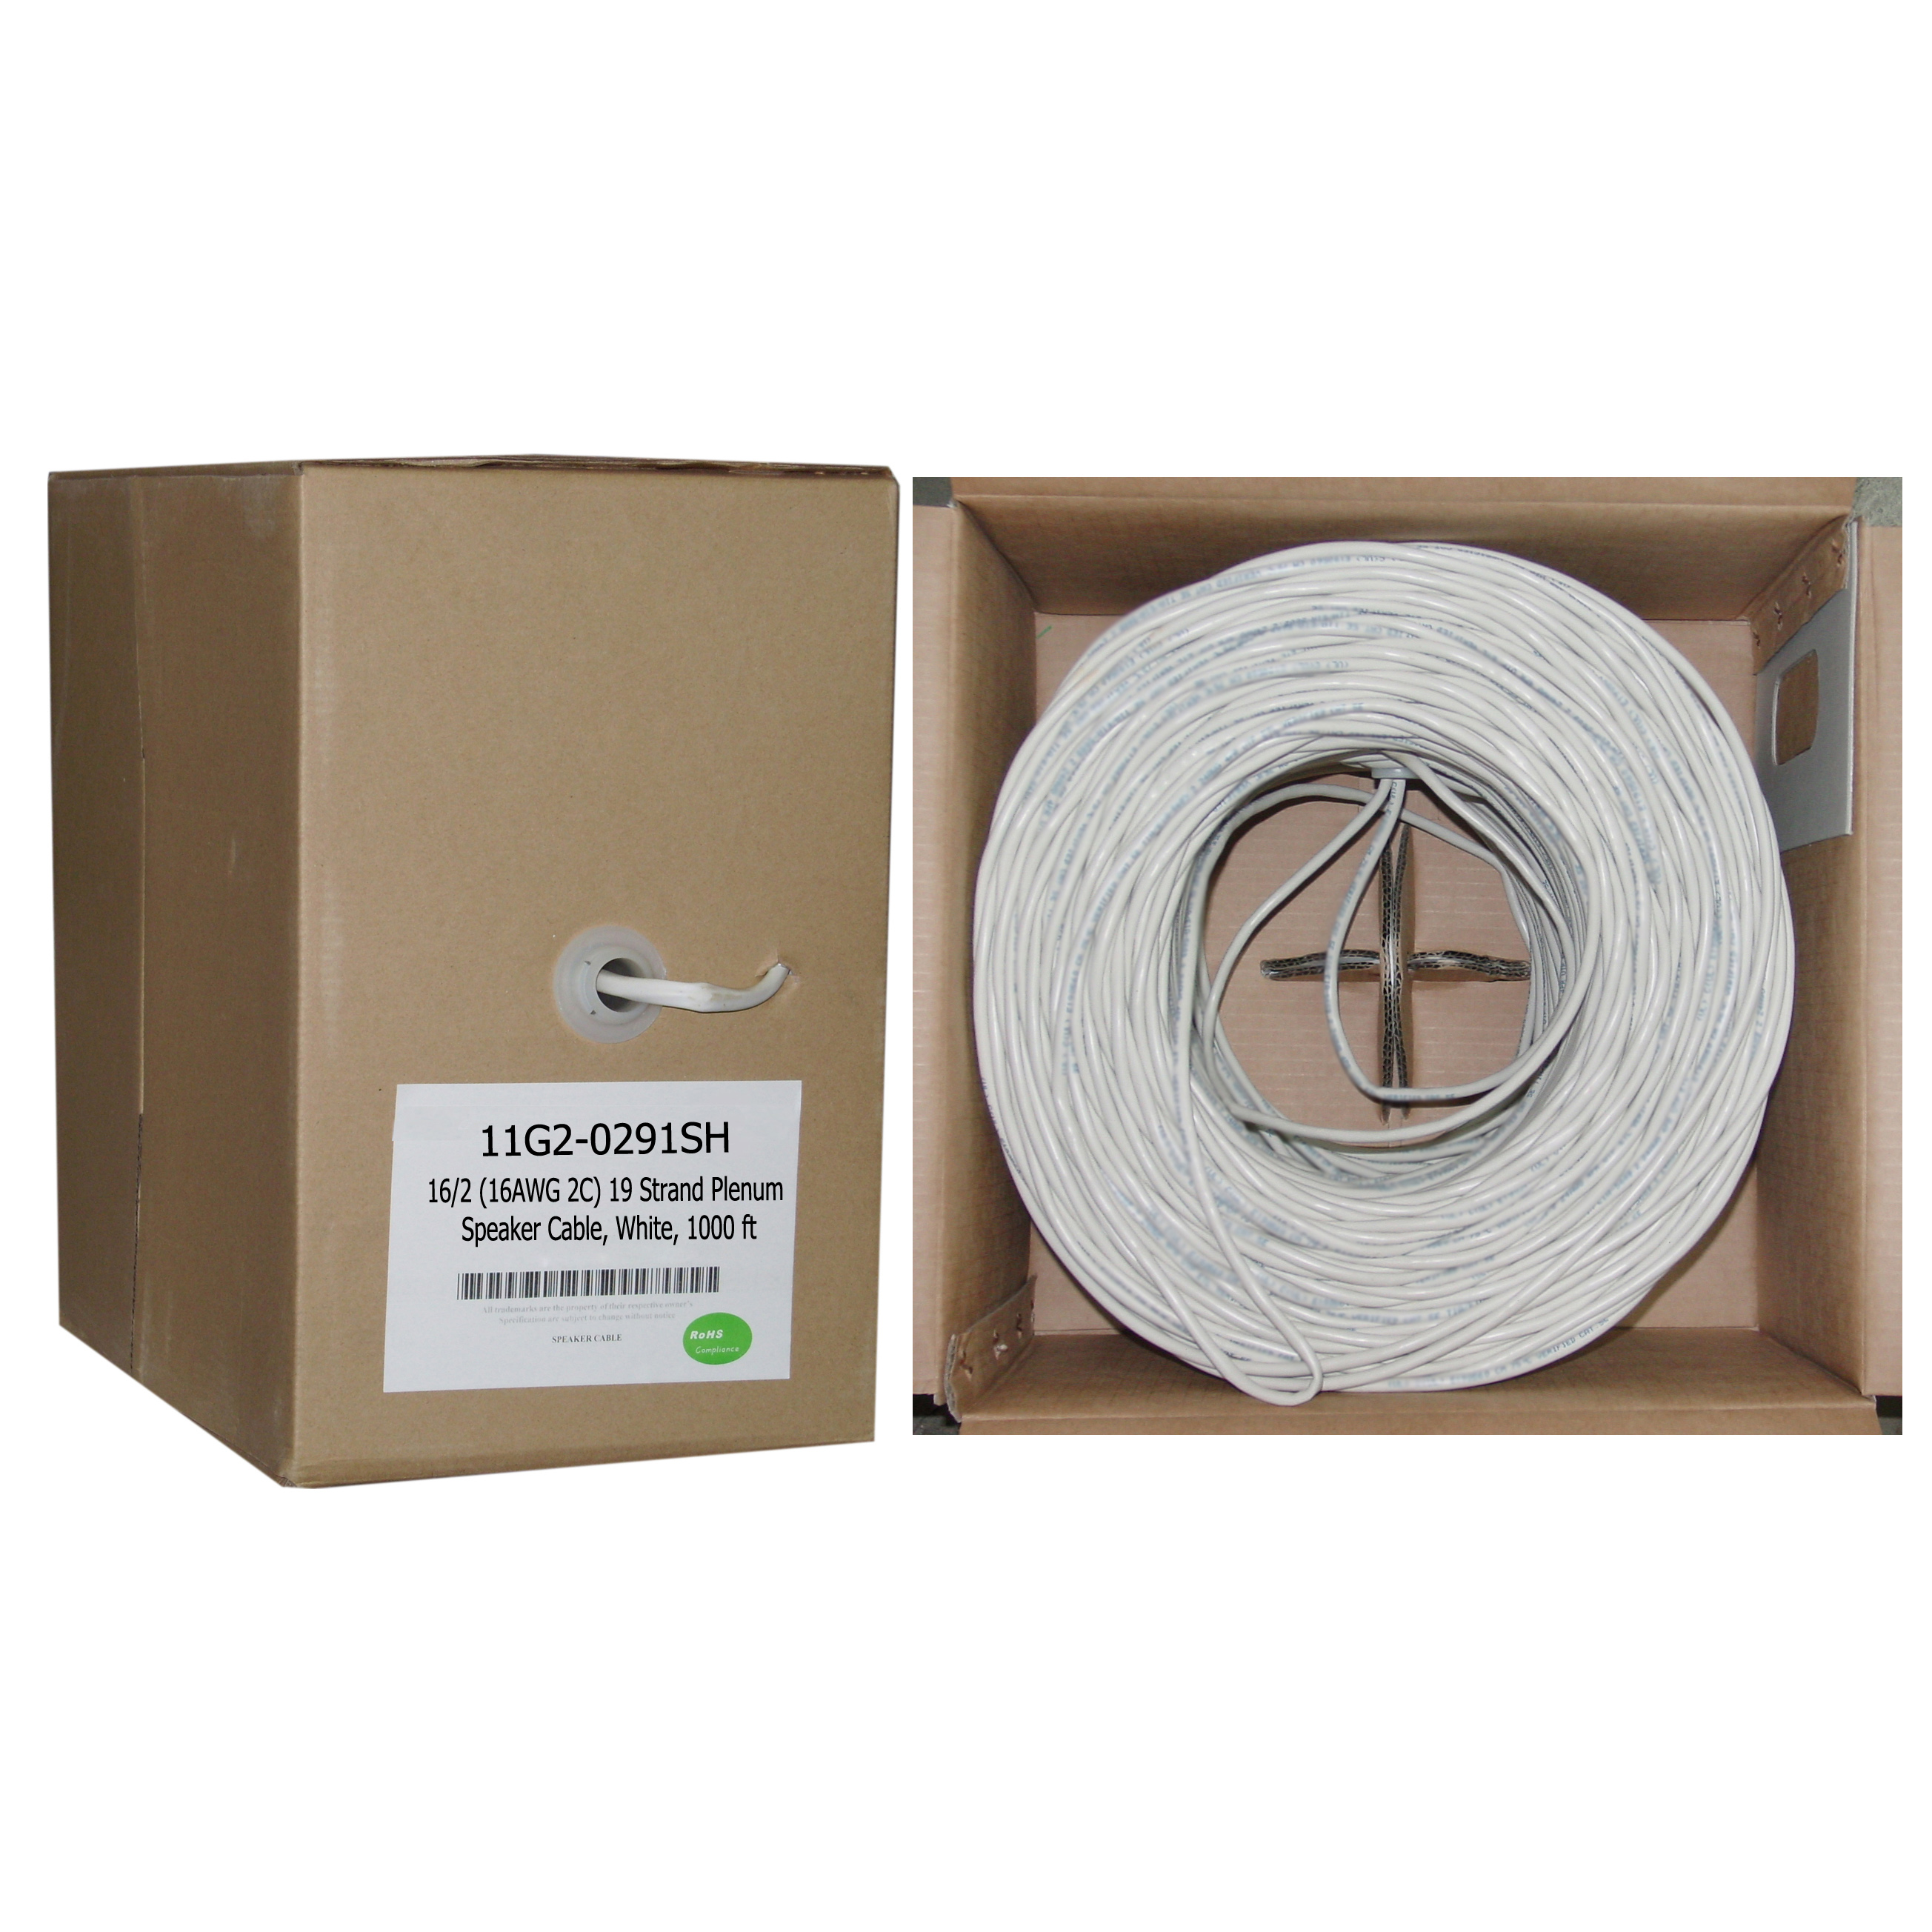 plenum speaker cable white pure copper 162 16 awg 2